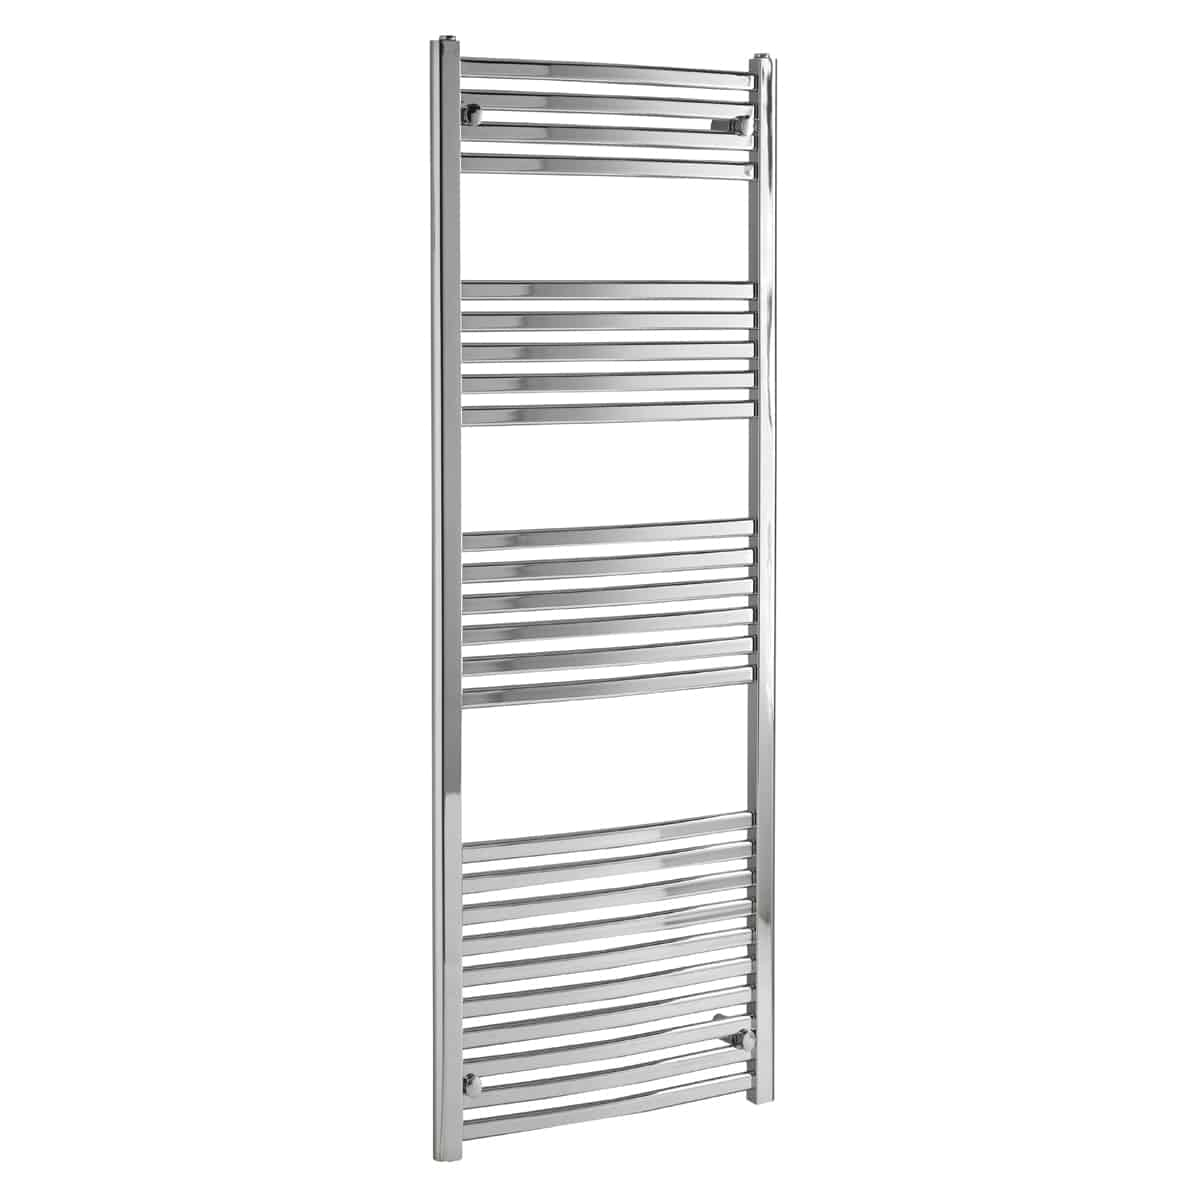 Alpine Modern Heated Towel Rail Warmer Chrome: CROSBY Flat Tube Modern Heated Towel Rail / Warmer